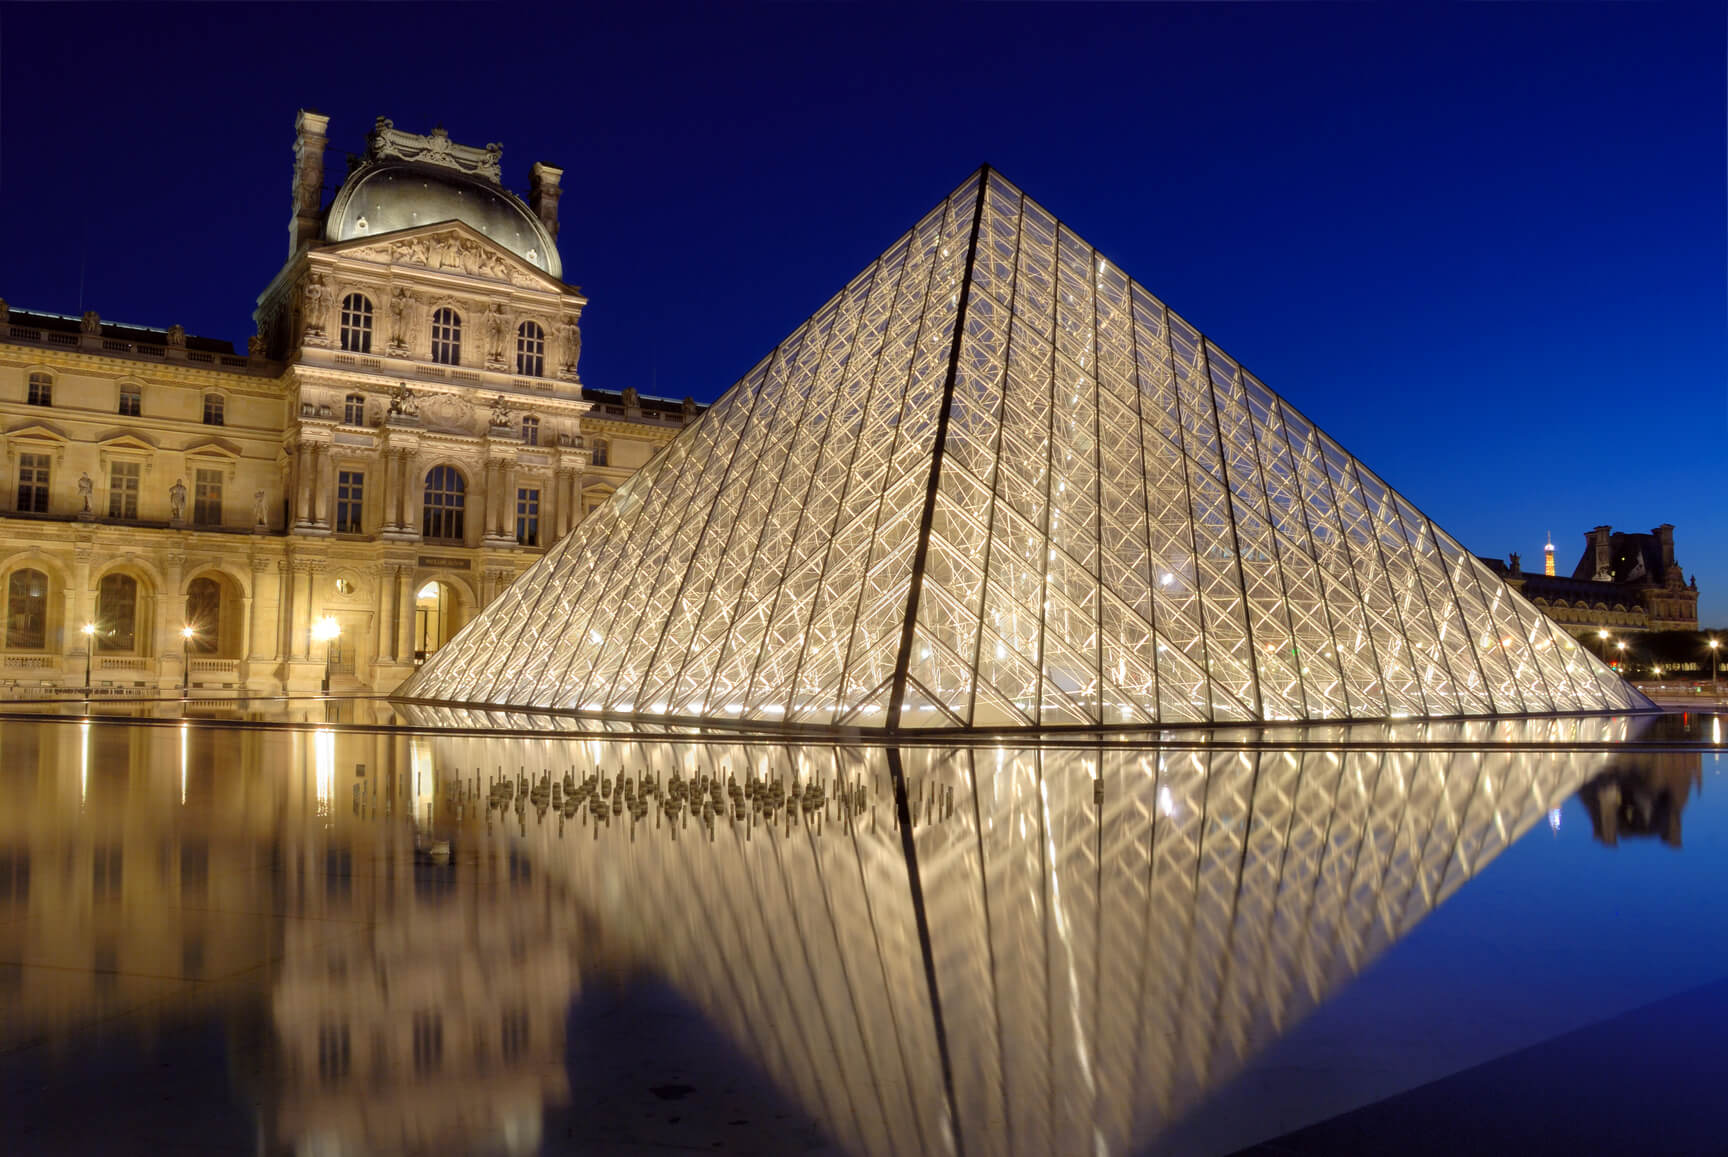 Hong Kong to Paris, France for only $384 USD roundtrip